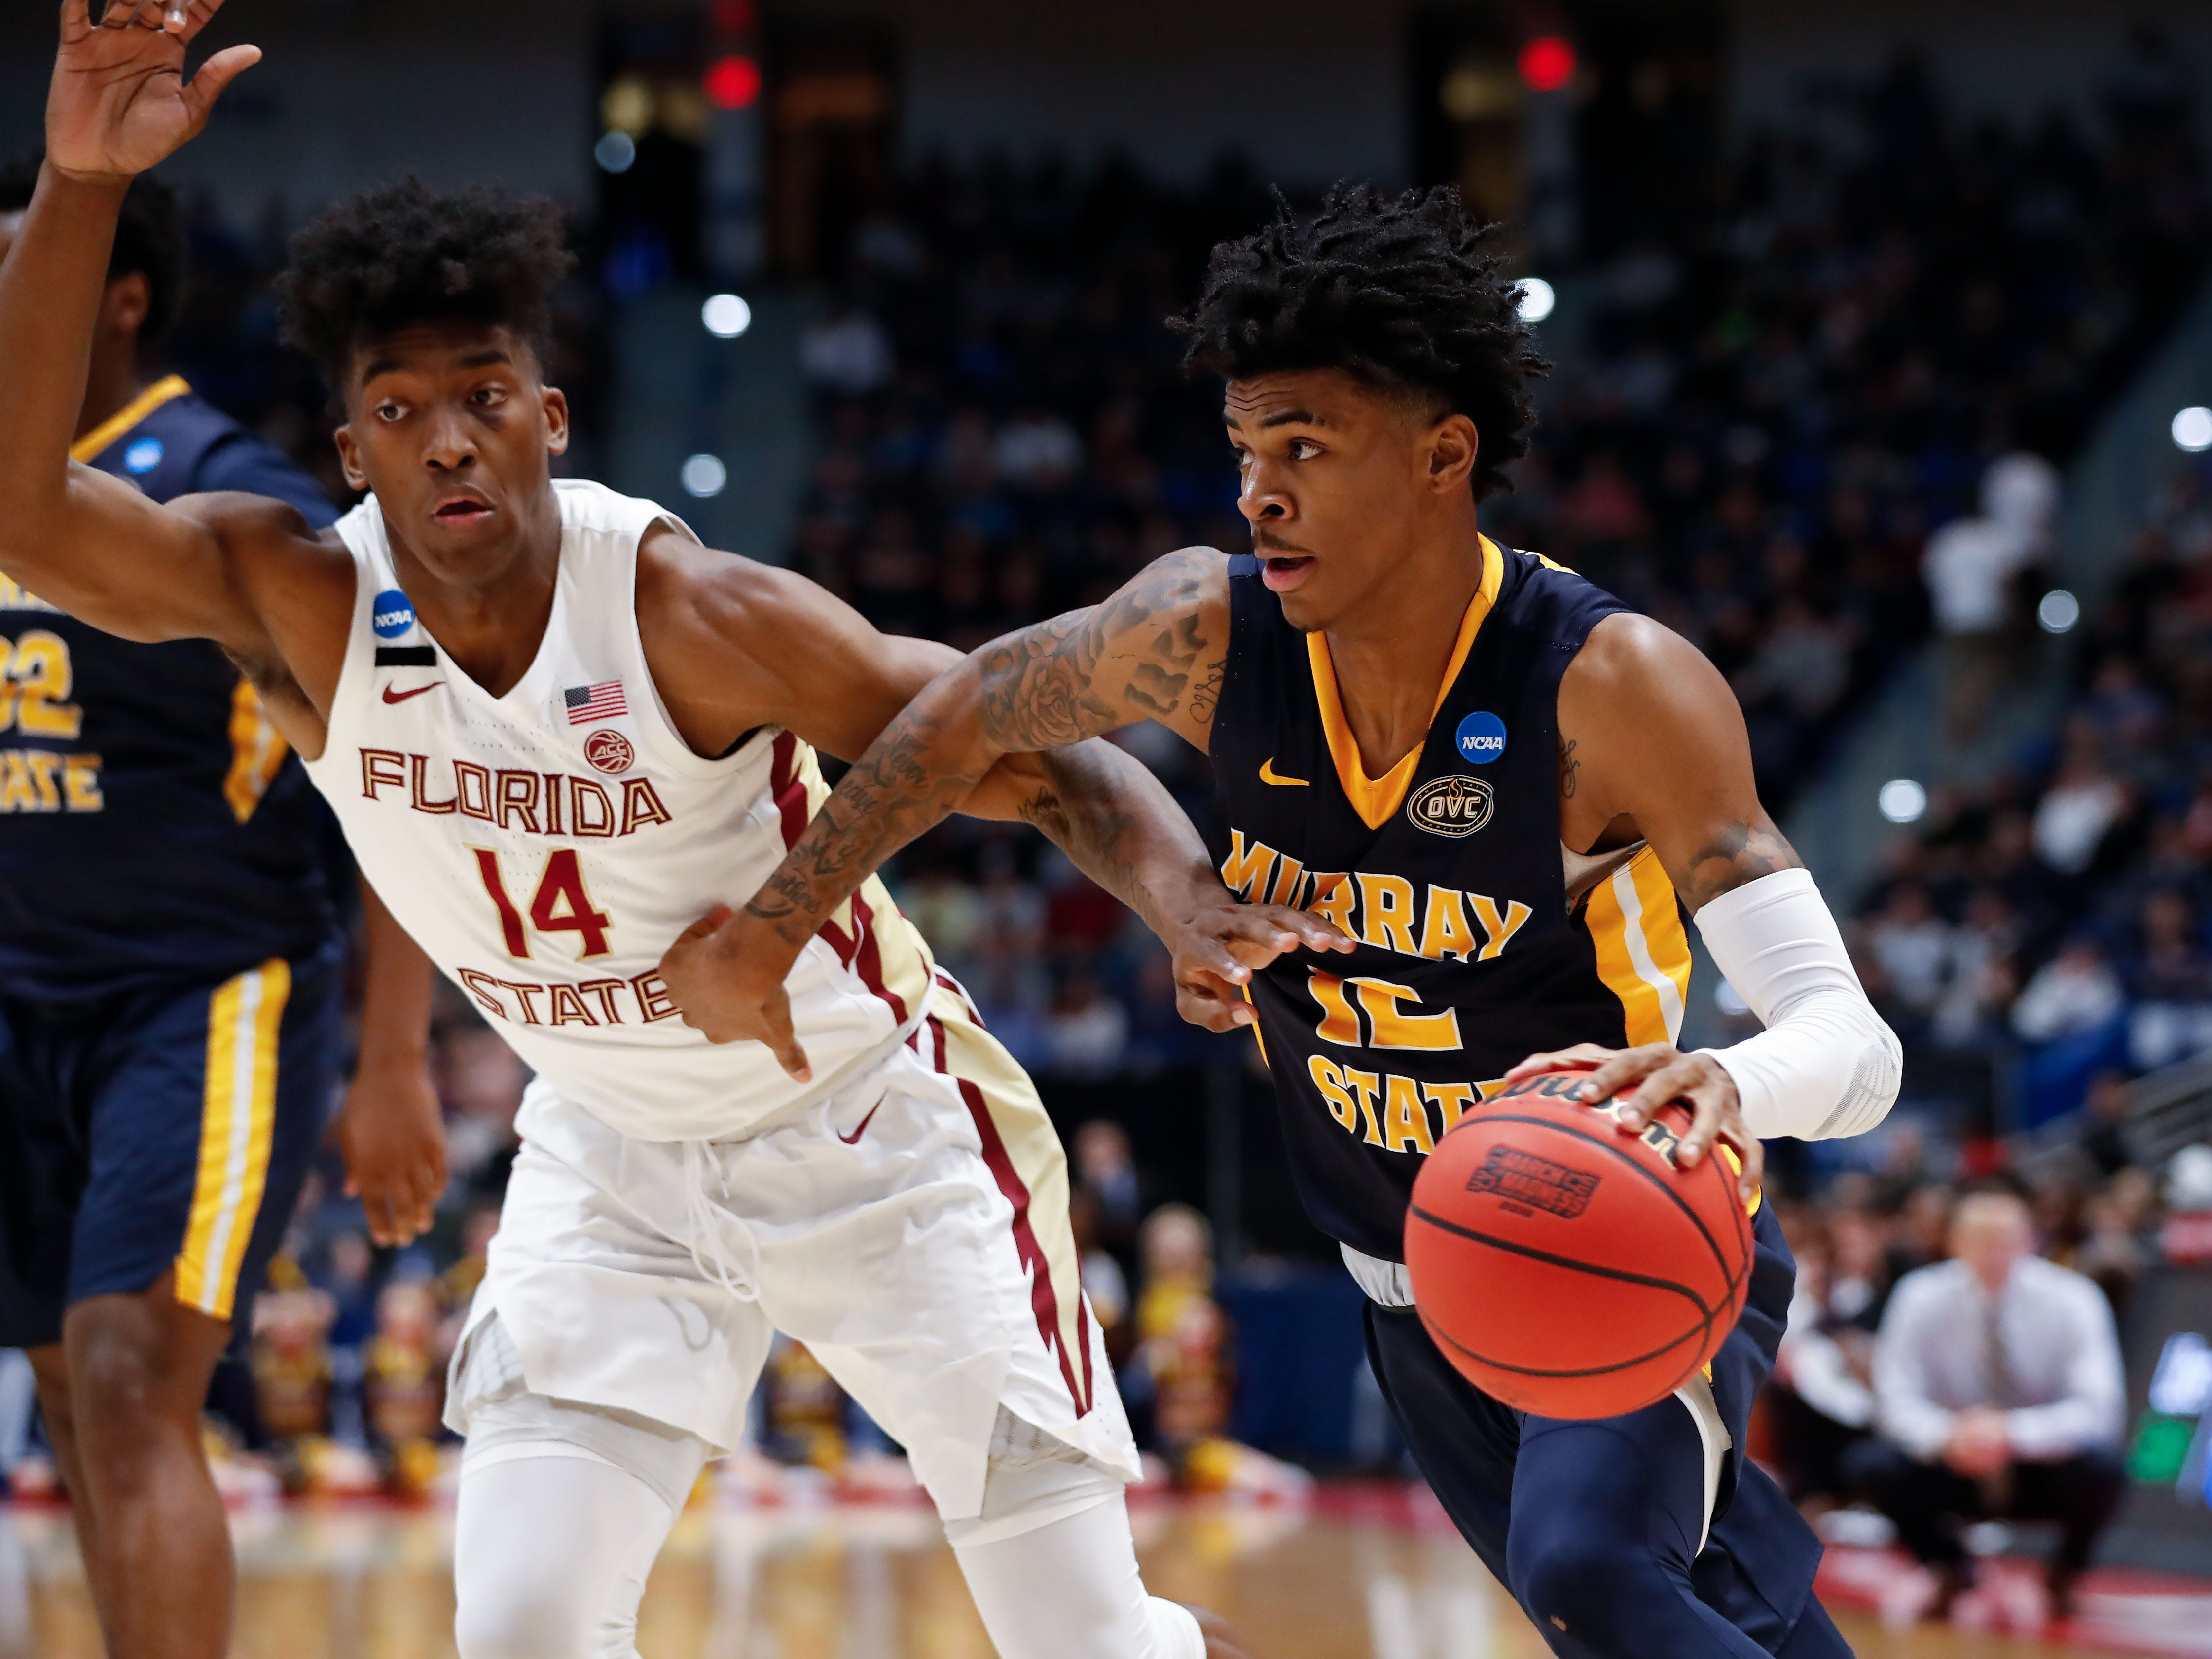 Mar 23, 2019; Hartford, CT, USA; Murray State Racers guard Ja Morant (12) drives to the basket against Florida State Seminoles guard Terance Mann (14) during the first half of a game in the second round of the 2019 NCAA Tournament at XL Center. Mandatory Credit: David Butler II-USA TODAY Sports